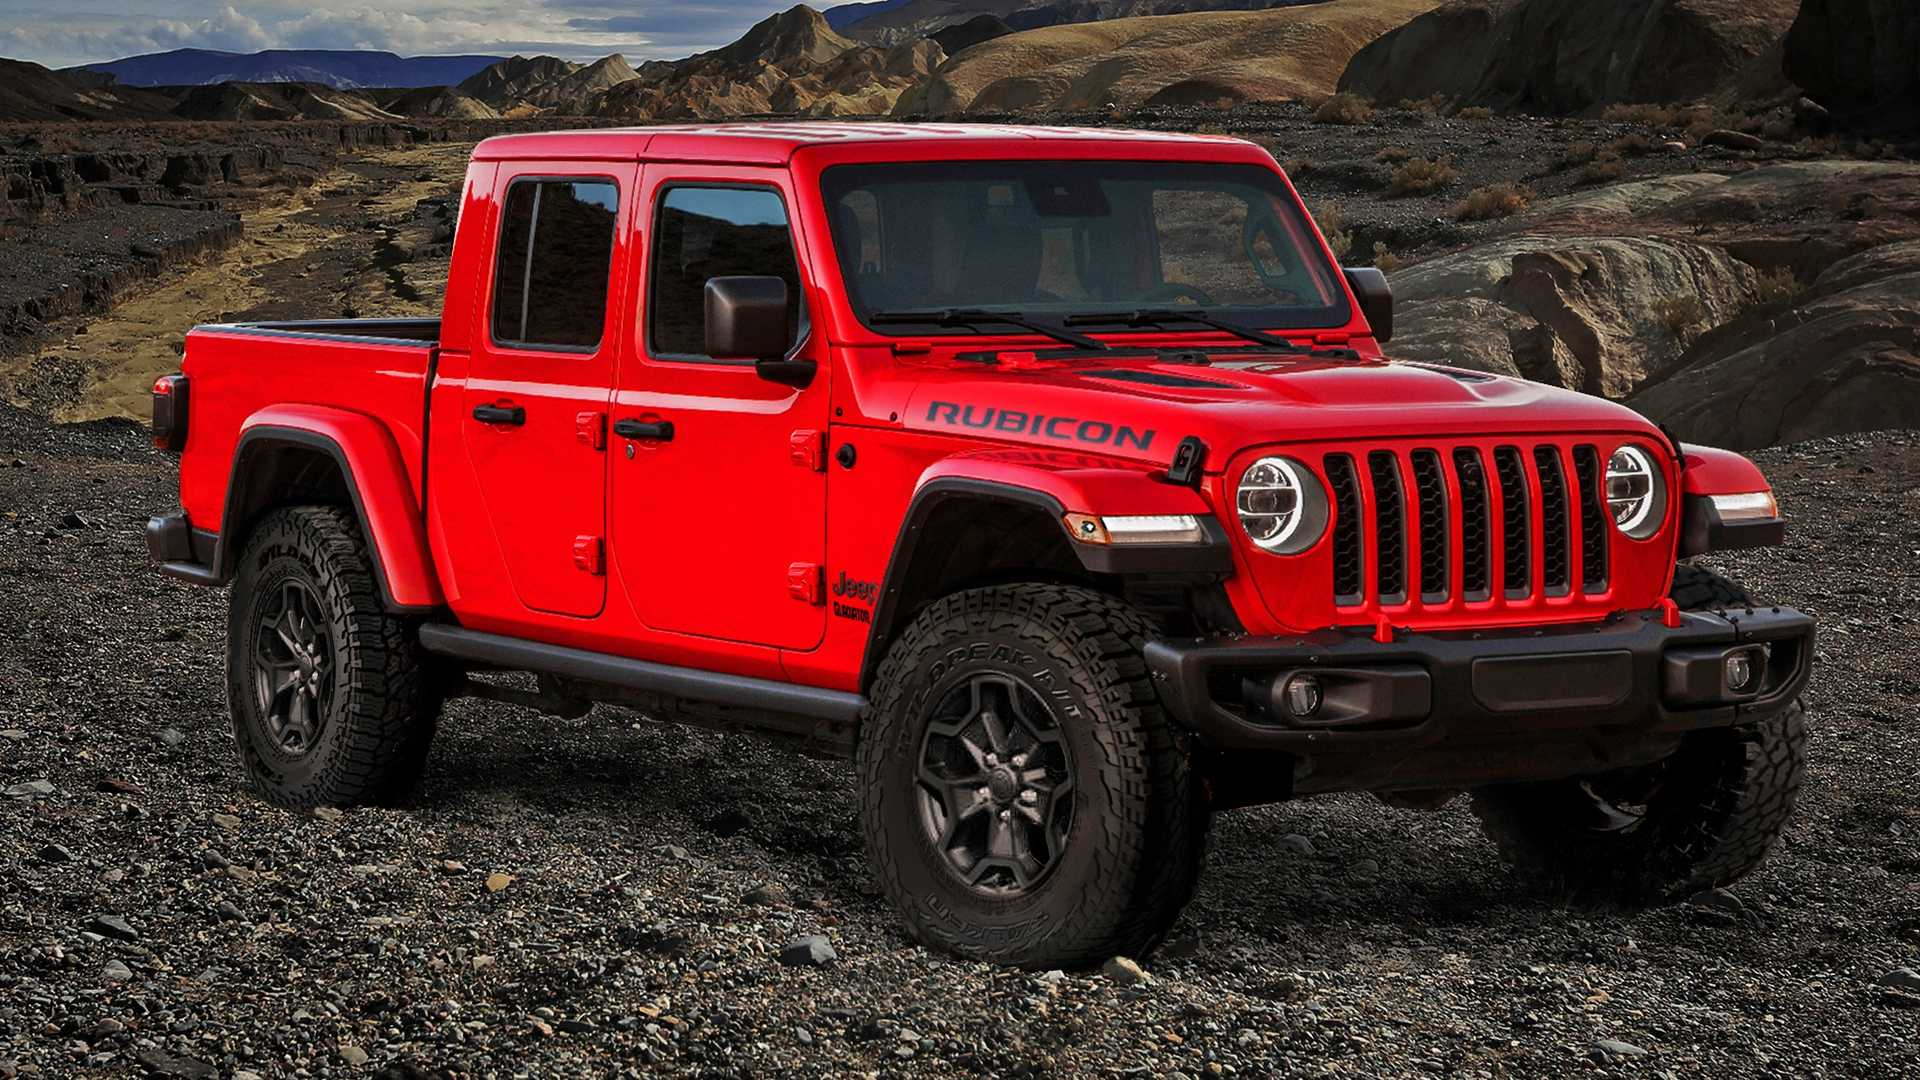 82 All New 2020 Jeep Gladiator Lease Price